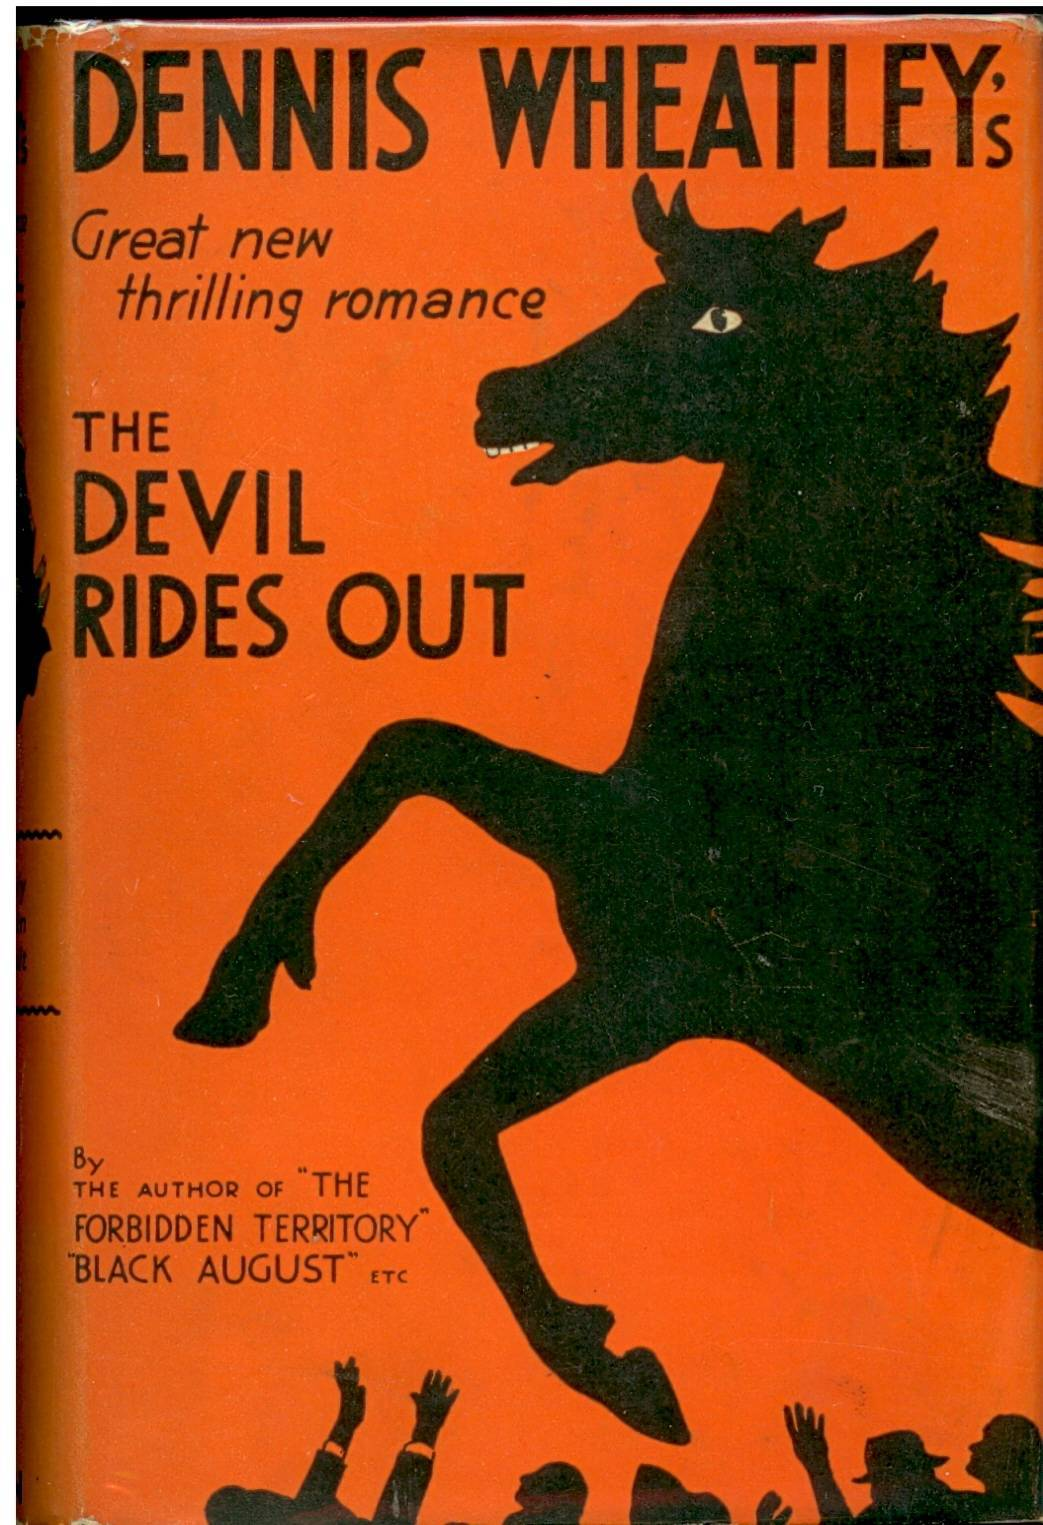 The Devil Rides Out published in 1934.